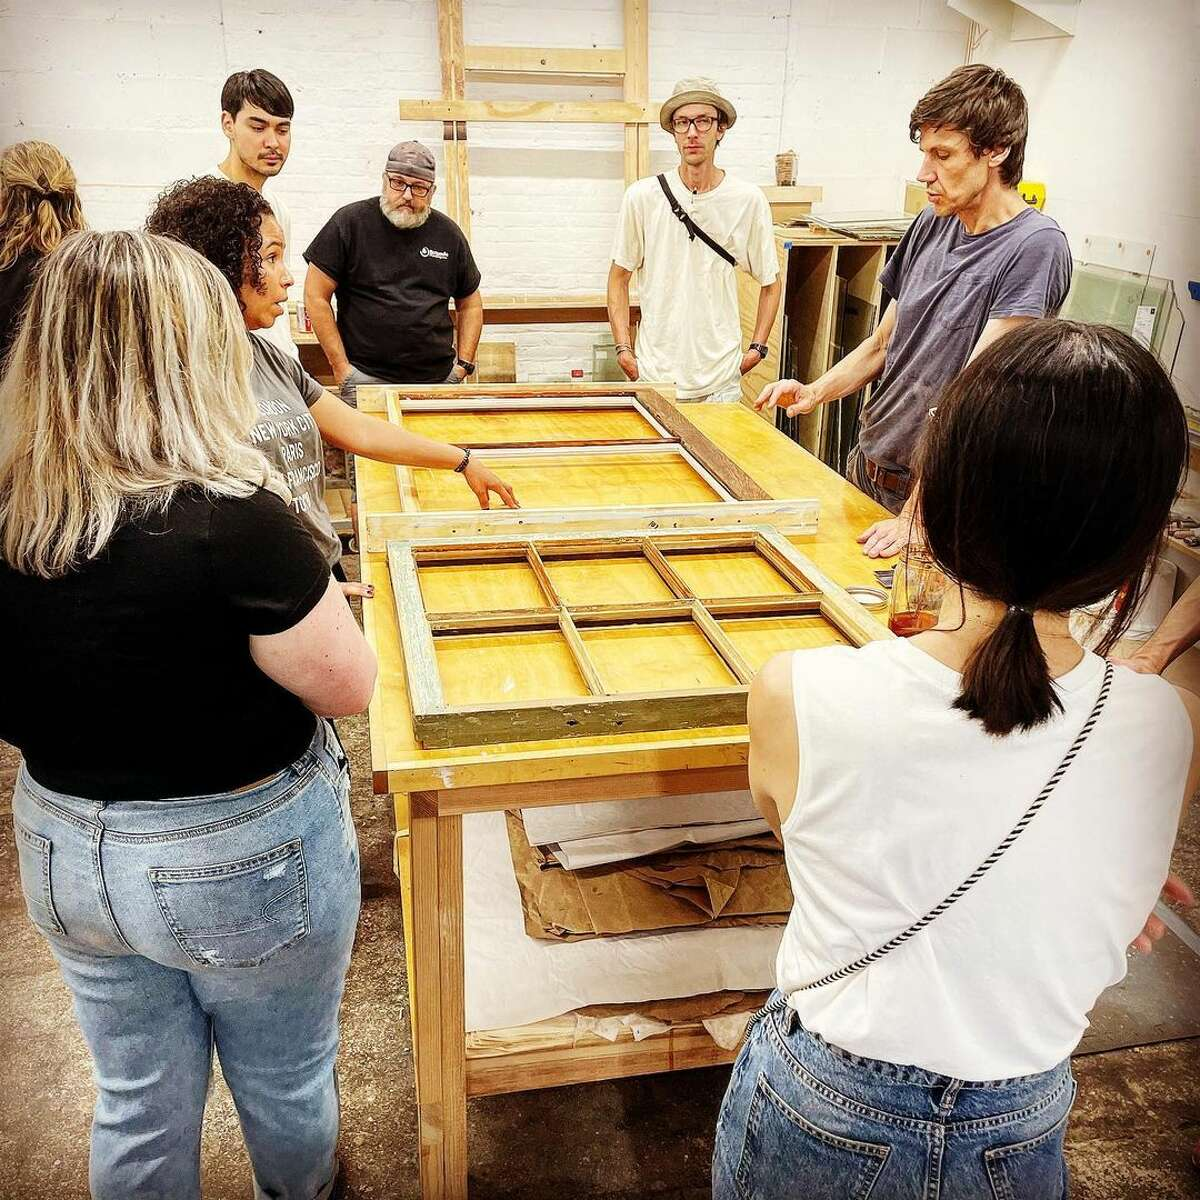 Architectural salvage shop Hudson Valley House Parts in Newburgh hosts various preservation workshops, including this one on how to restore old windows.